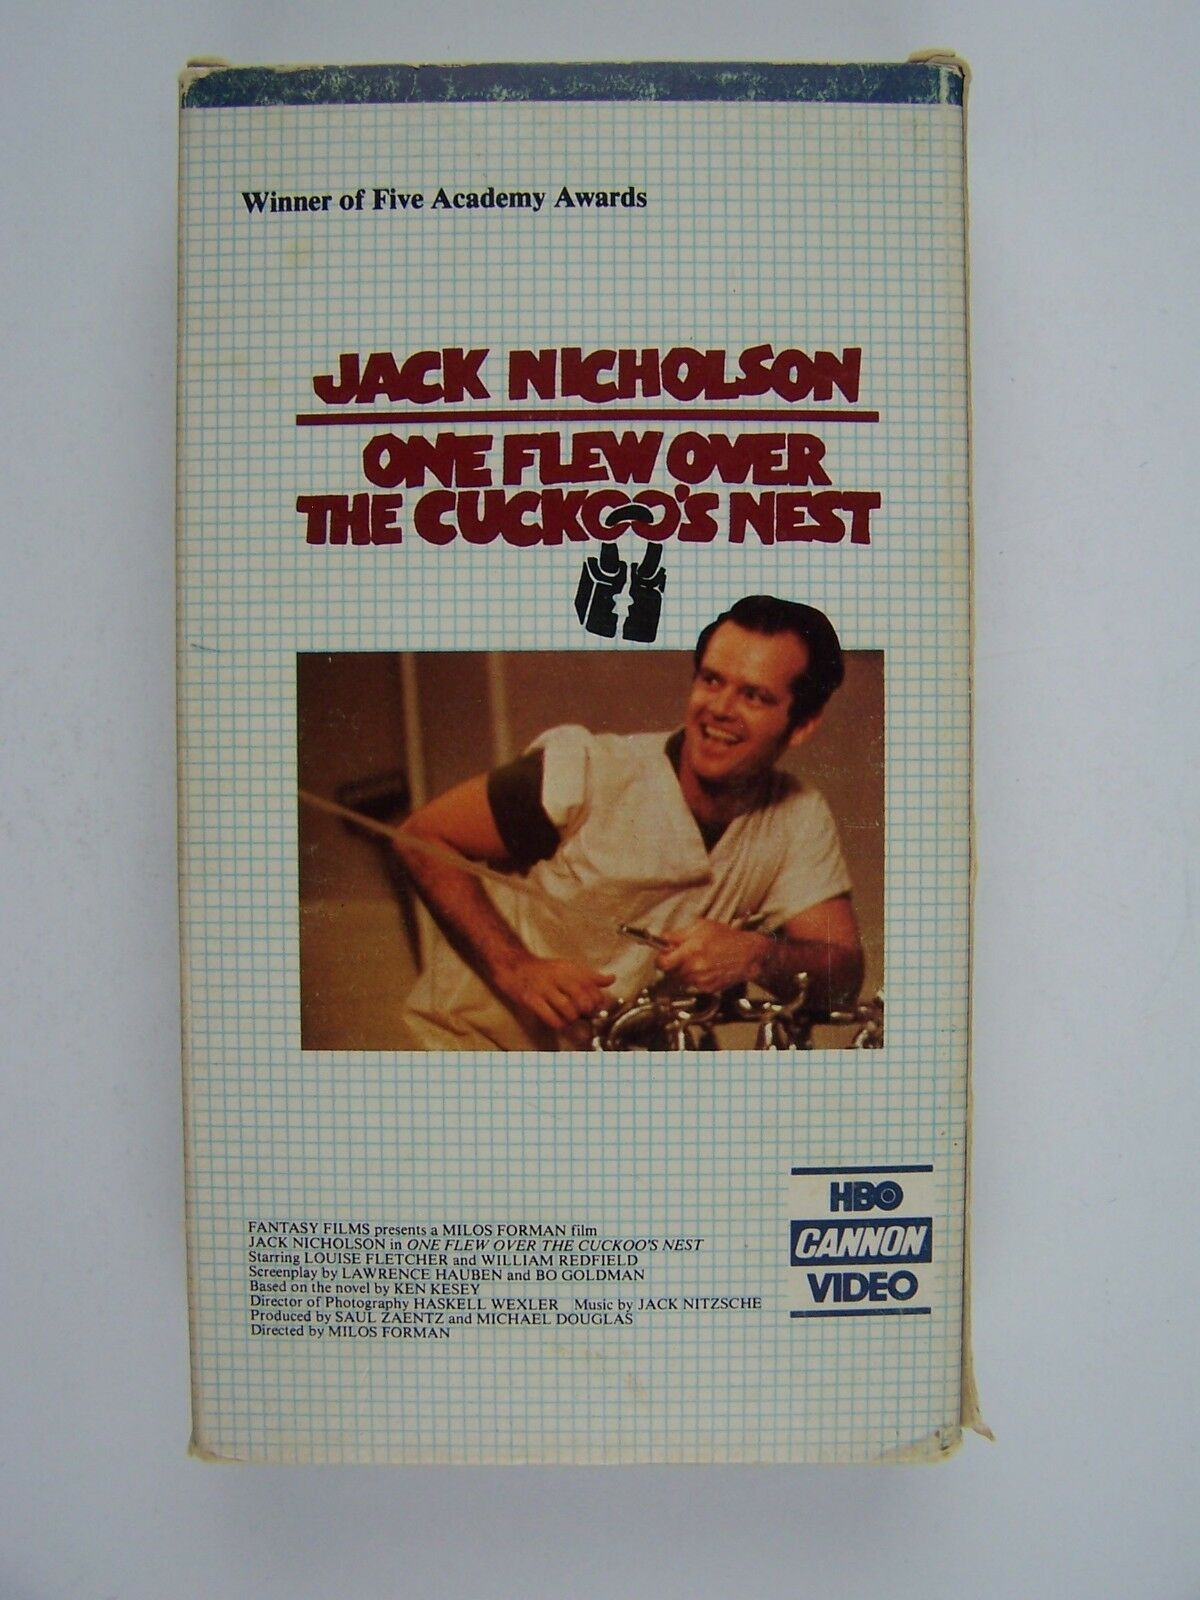 One Flew Over The Cuckoo's Nest VHS Video HBO Cannon Ed